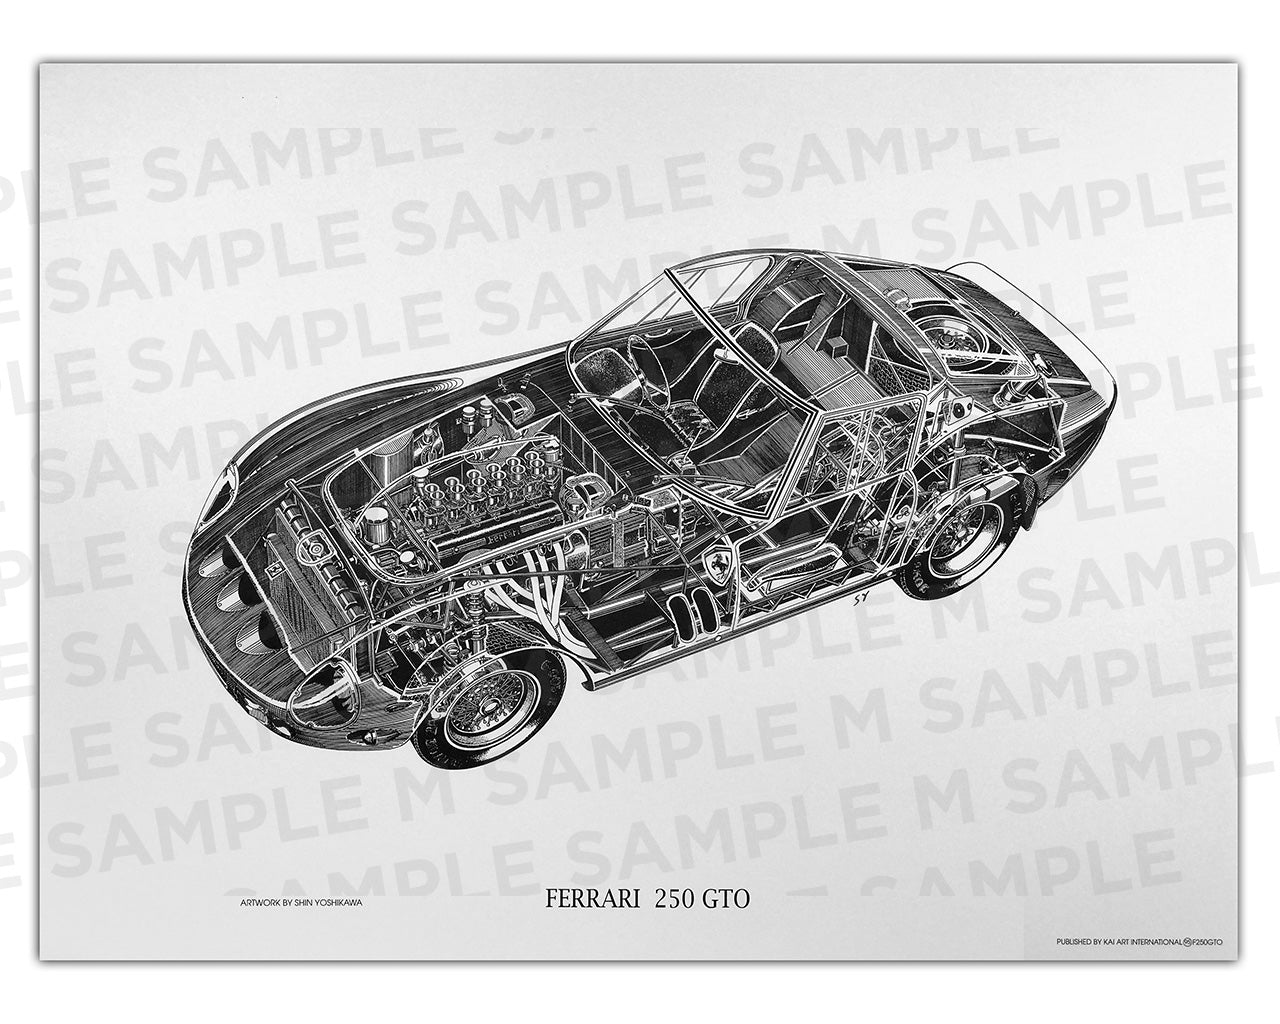 Authentic Ferrari 250  GTO cutaway drawing print by renowned automotive artist Shin Yoshikawa